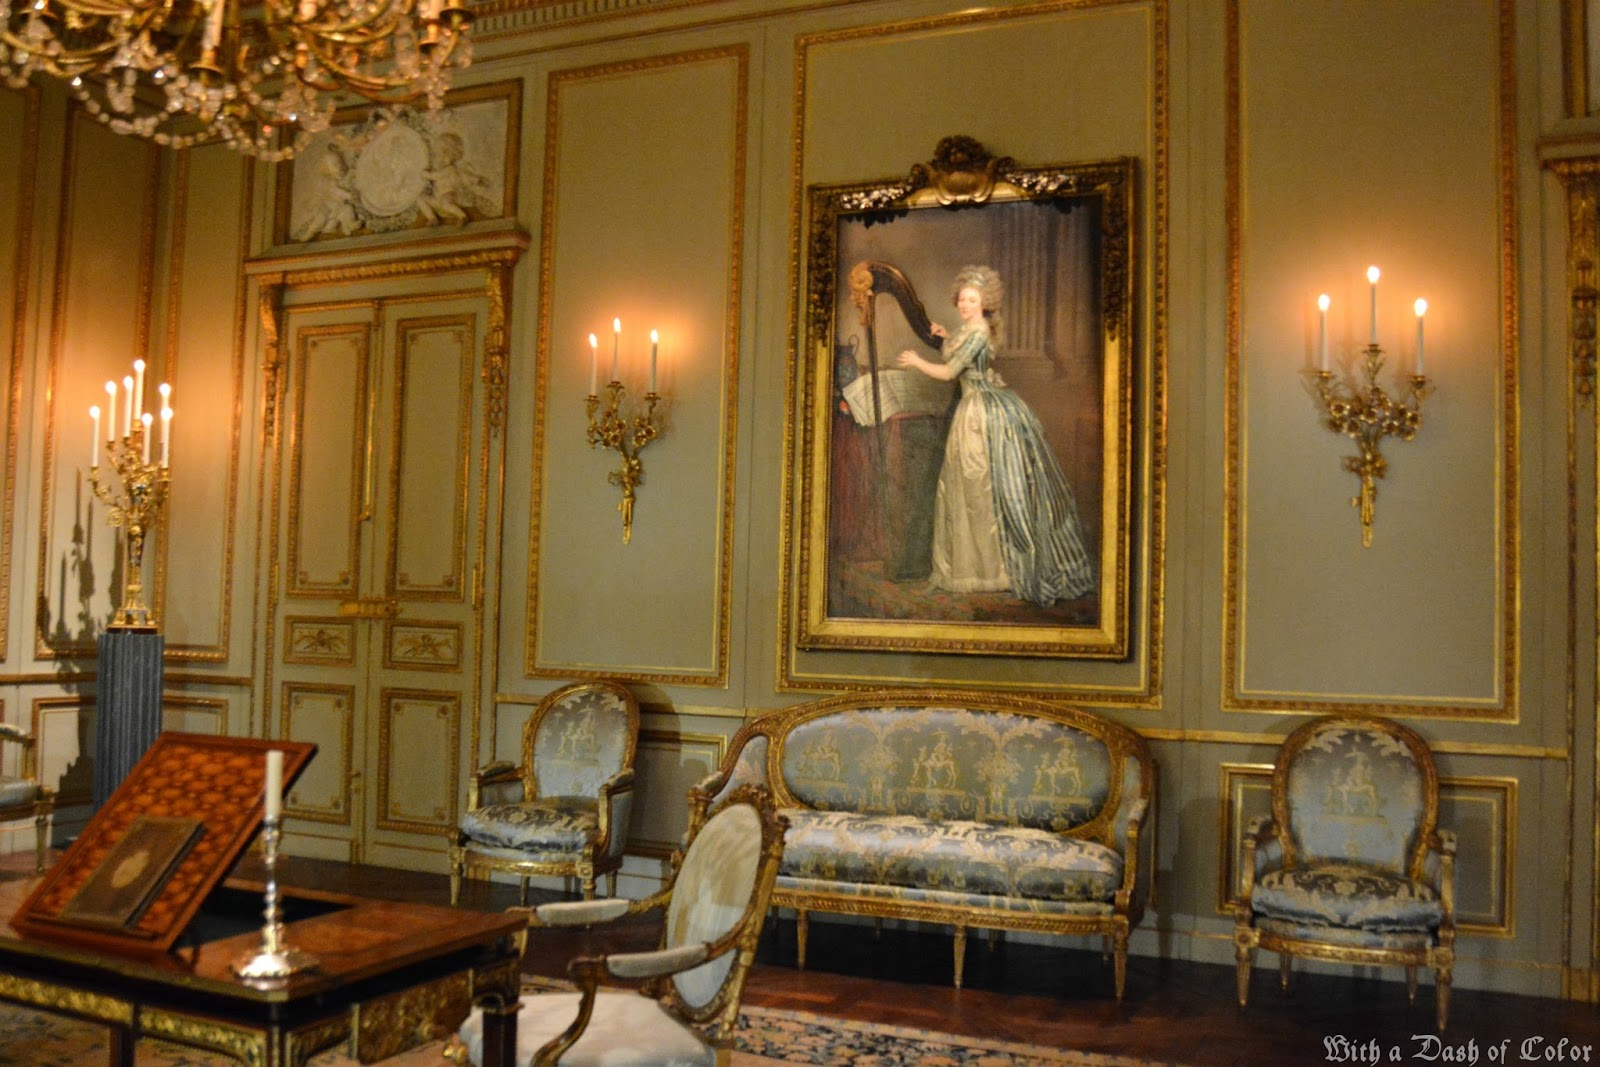 Marie Antoinette Inspired Bedroom With A Dash Of Color French Decor In The Wrightsman Galleries